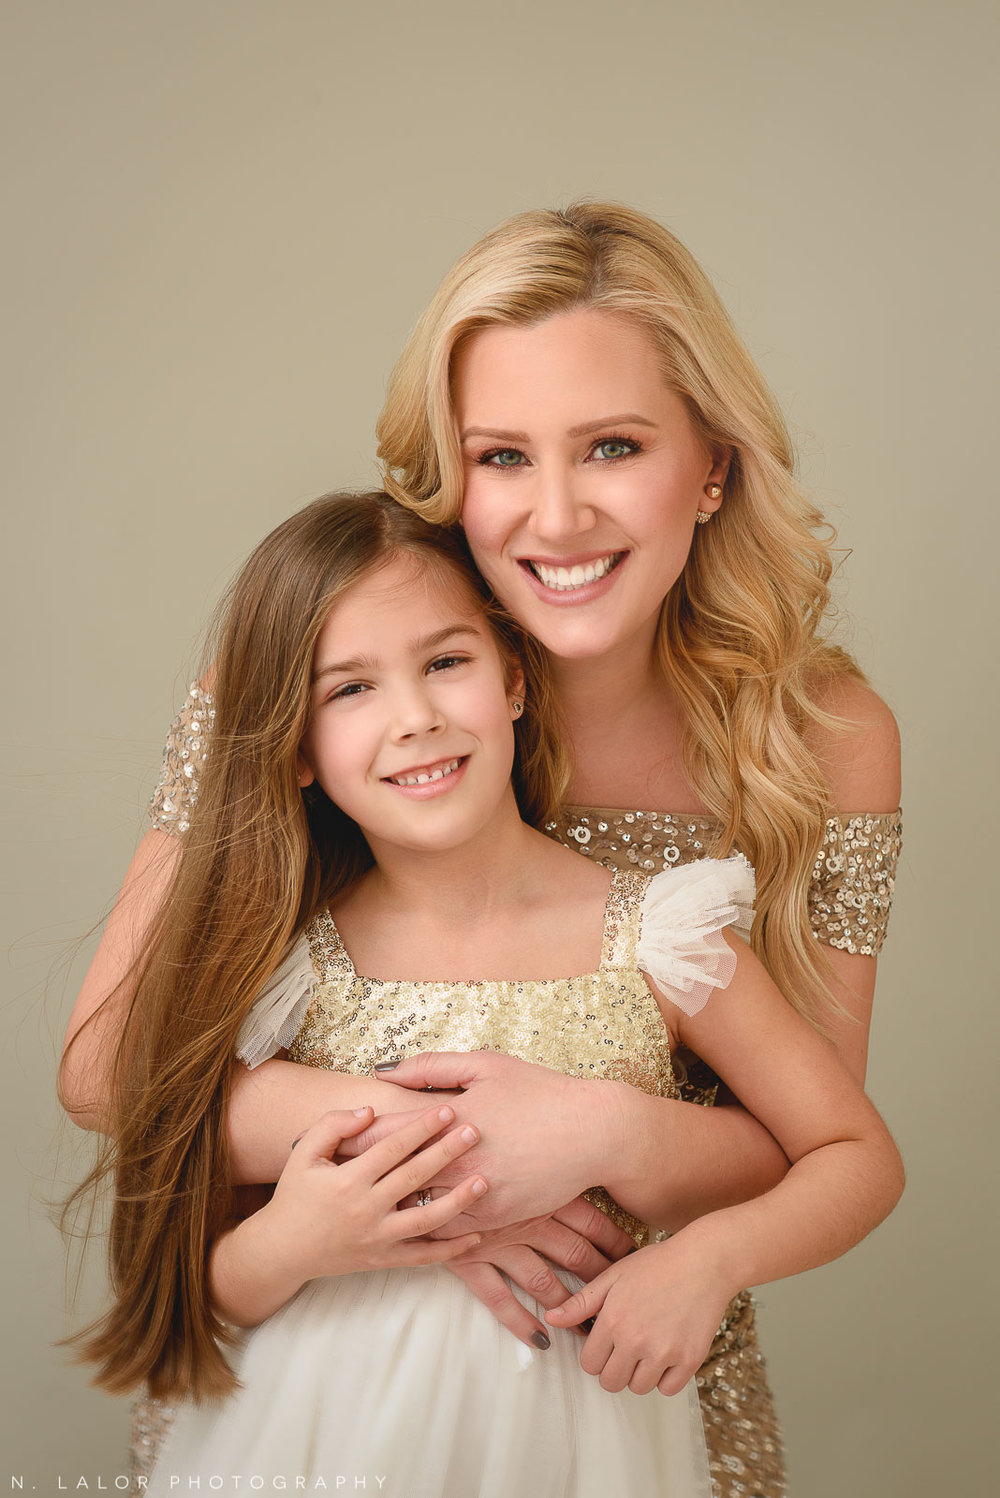 Image of a Mother and daughter hugging. Studio family portrait by N. Lalor Photography in Greenwich Connecticut.